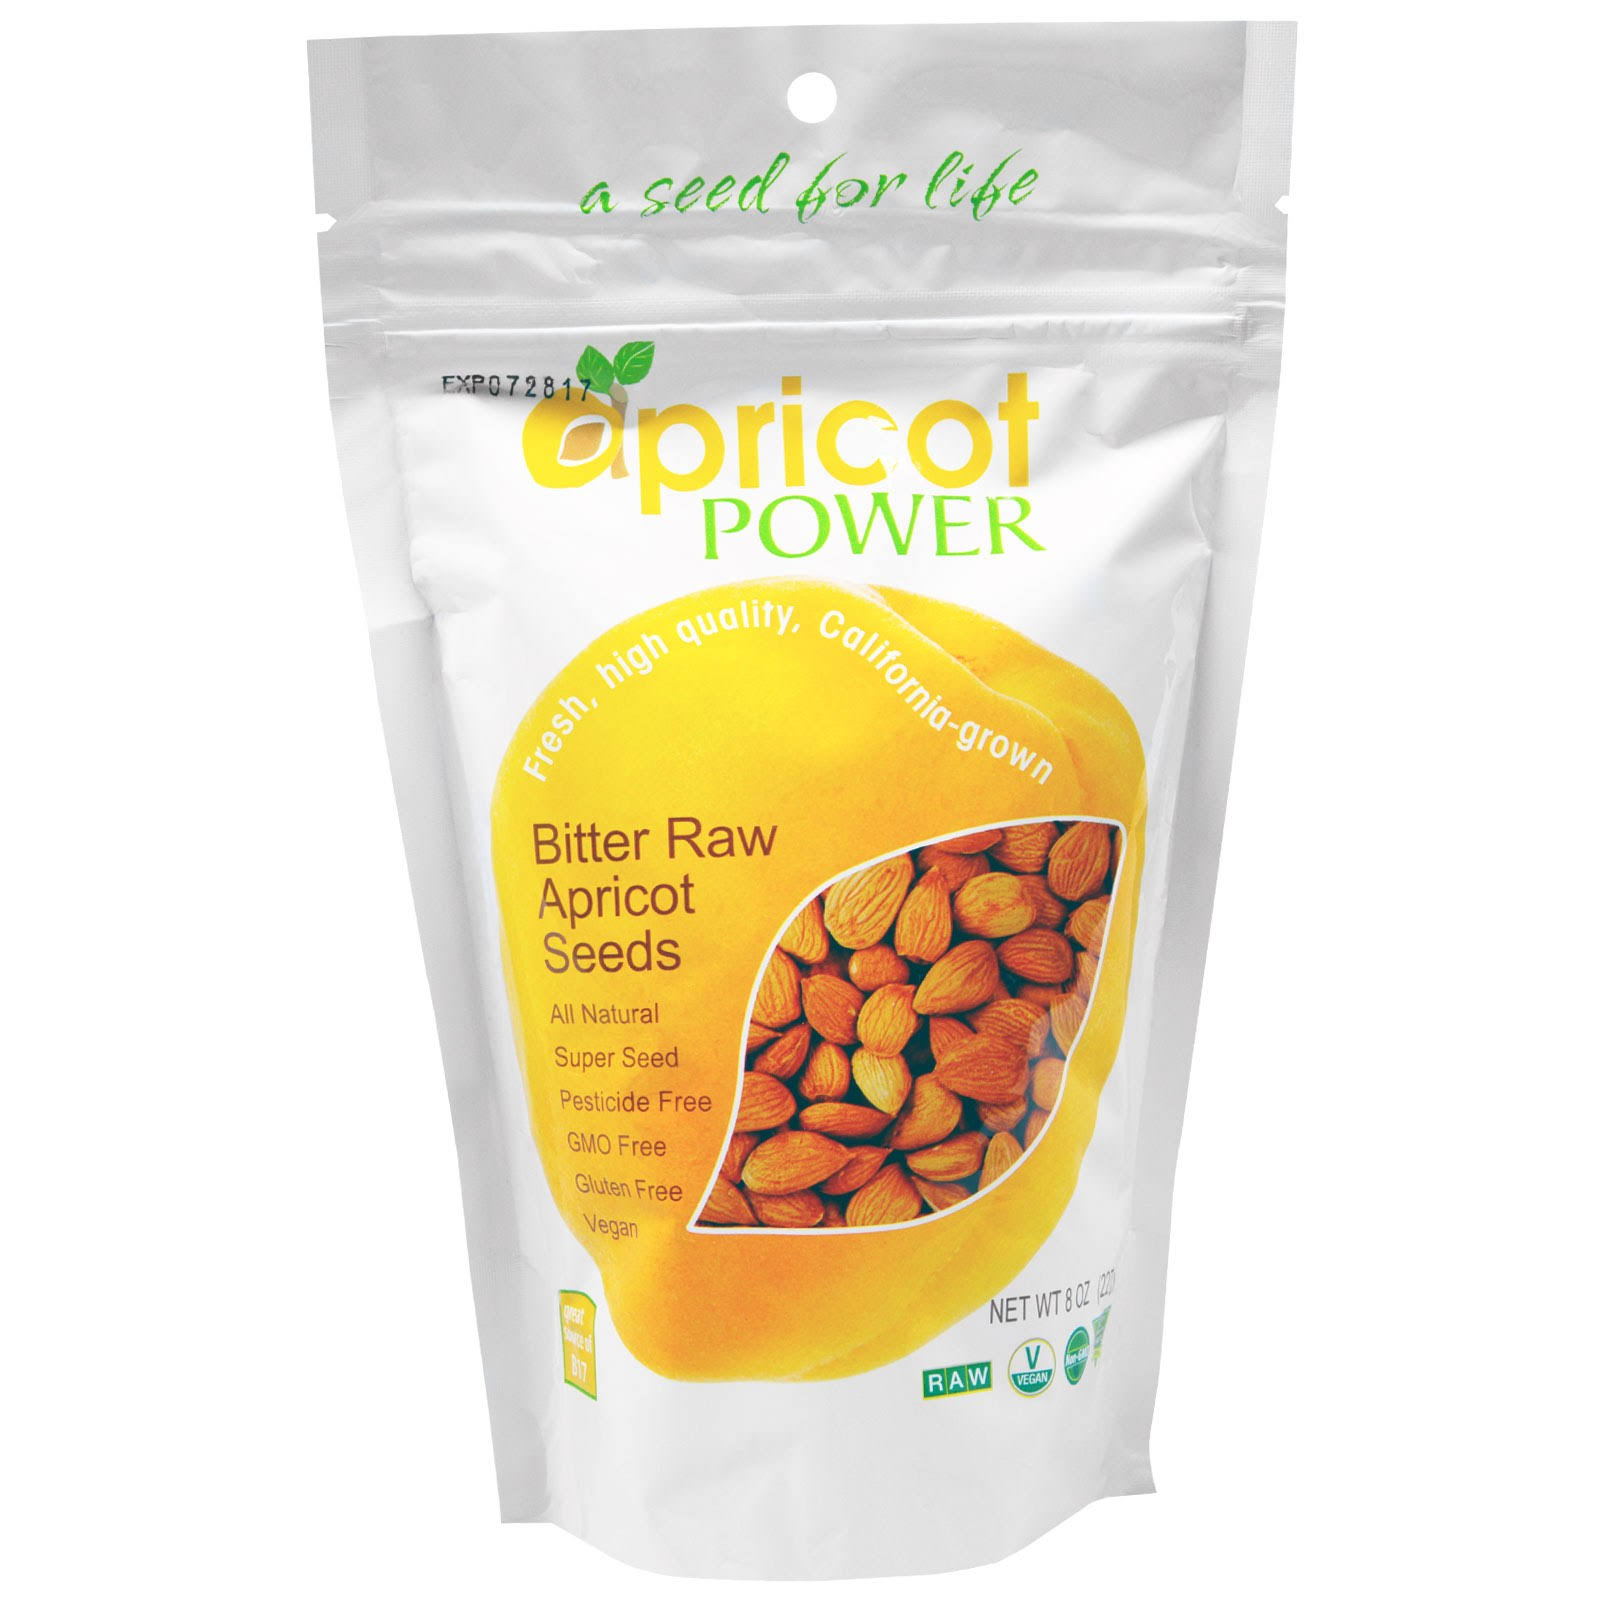 Bitter Raw Apricot Kernels Seeds - 8oz